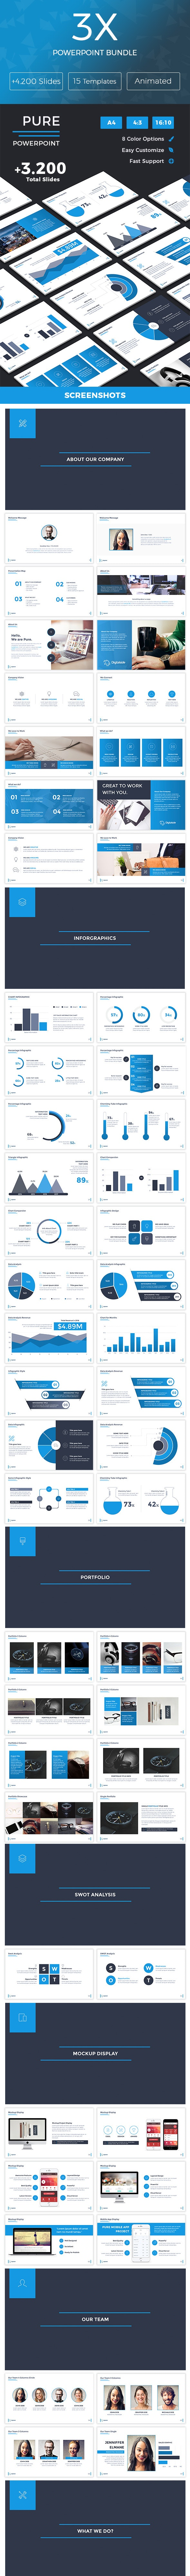 3X Powerpoint Bundle - 3in1 - PowerPoint Templates Presentation Templates